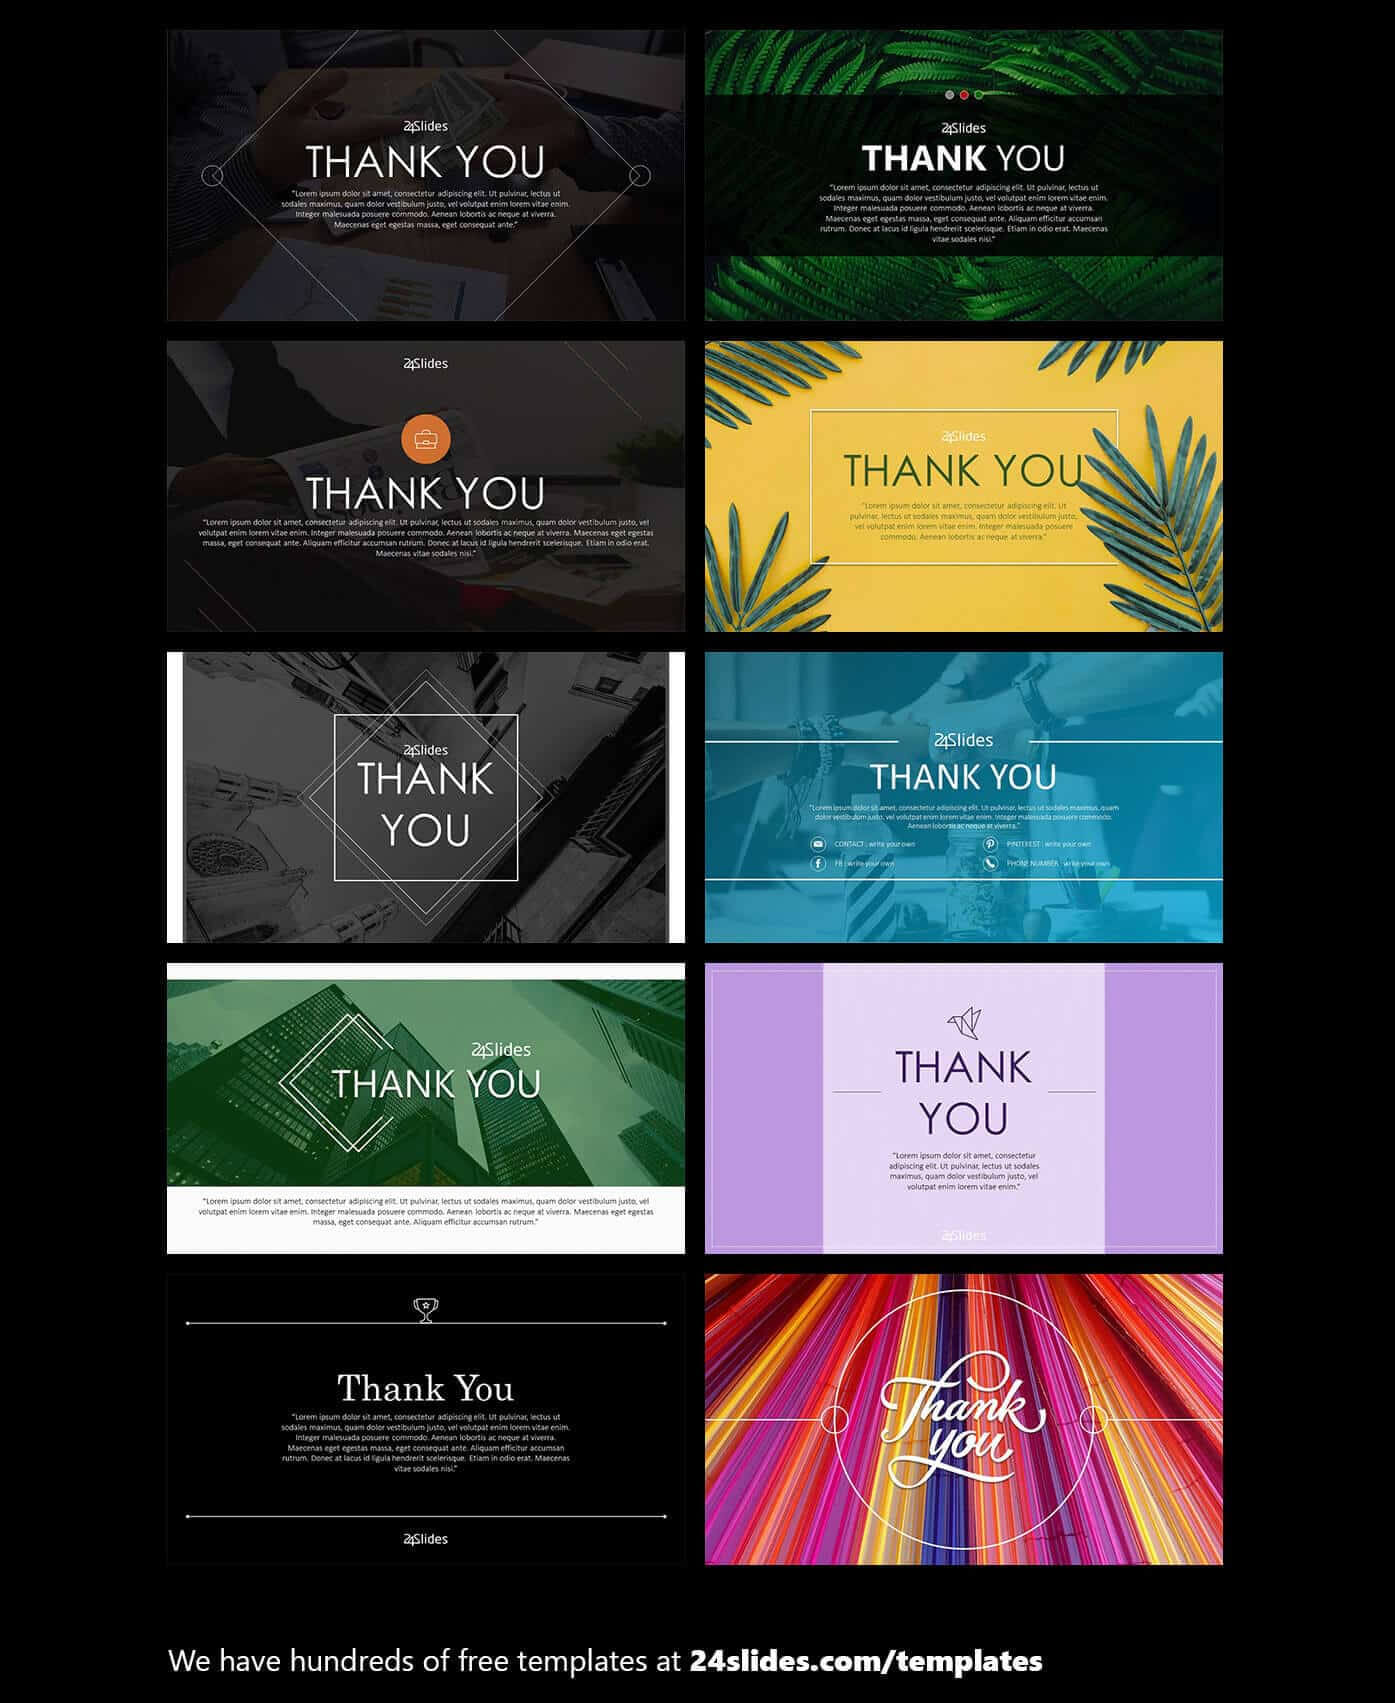 15 Fun And Colorful Free Powerpoint Templates   Present Better Inside Powerpoint Photo Slideshow Template